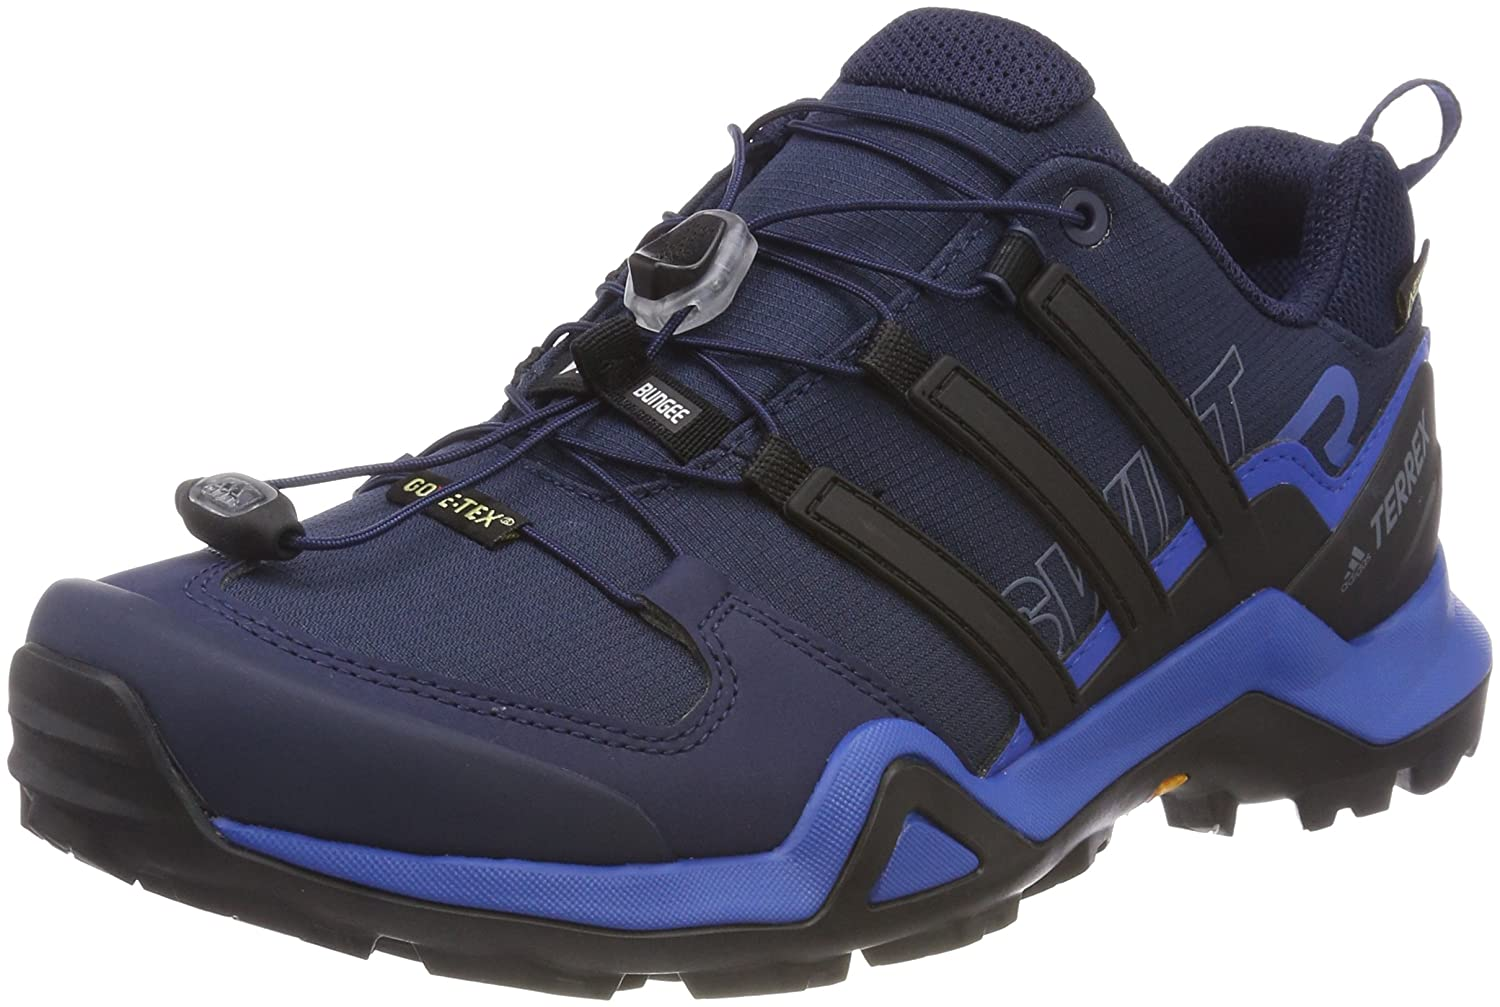 Adidas Terrex Swift R2 GTX, Zapatillas de Running para Asfalto para Hombre 47 1/3 EU|Azul (Collegiate Navy/Core Black/Blue Beauty 0)